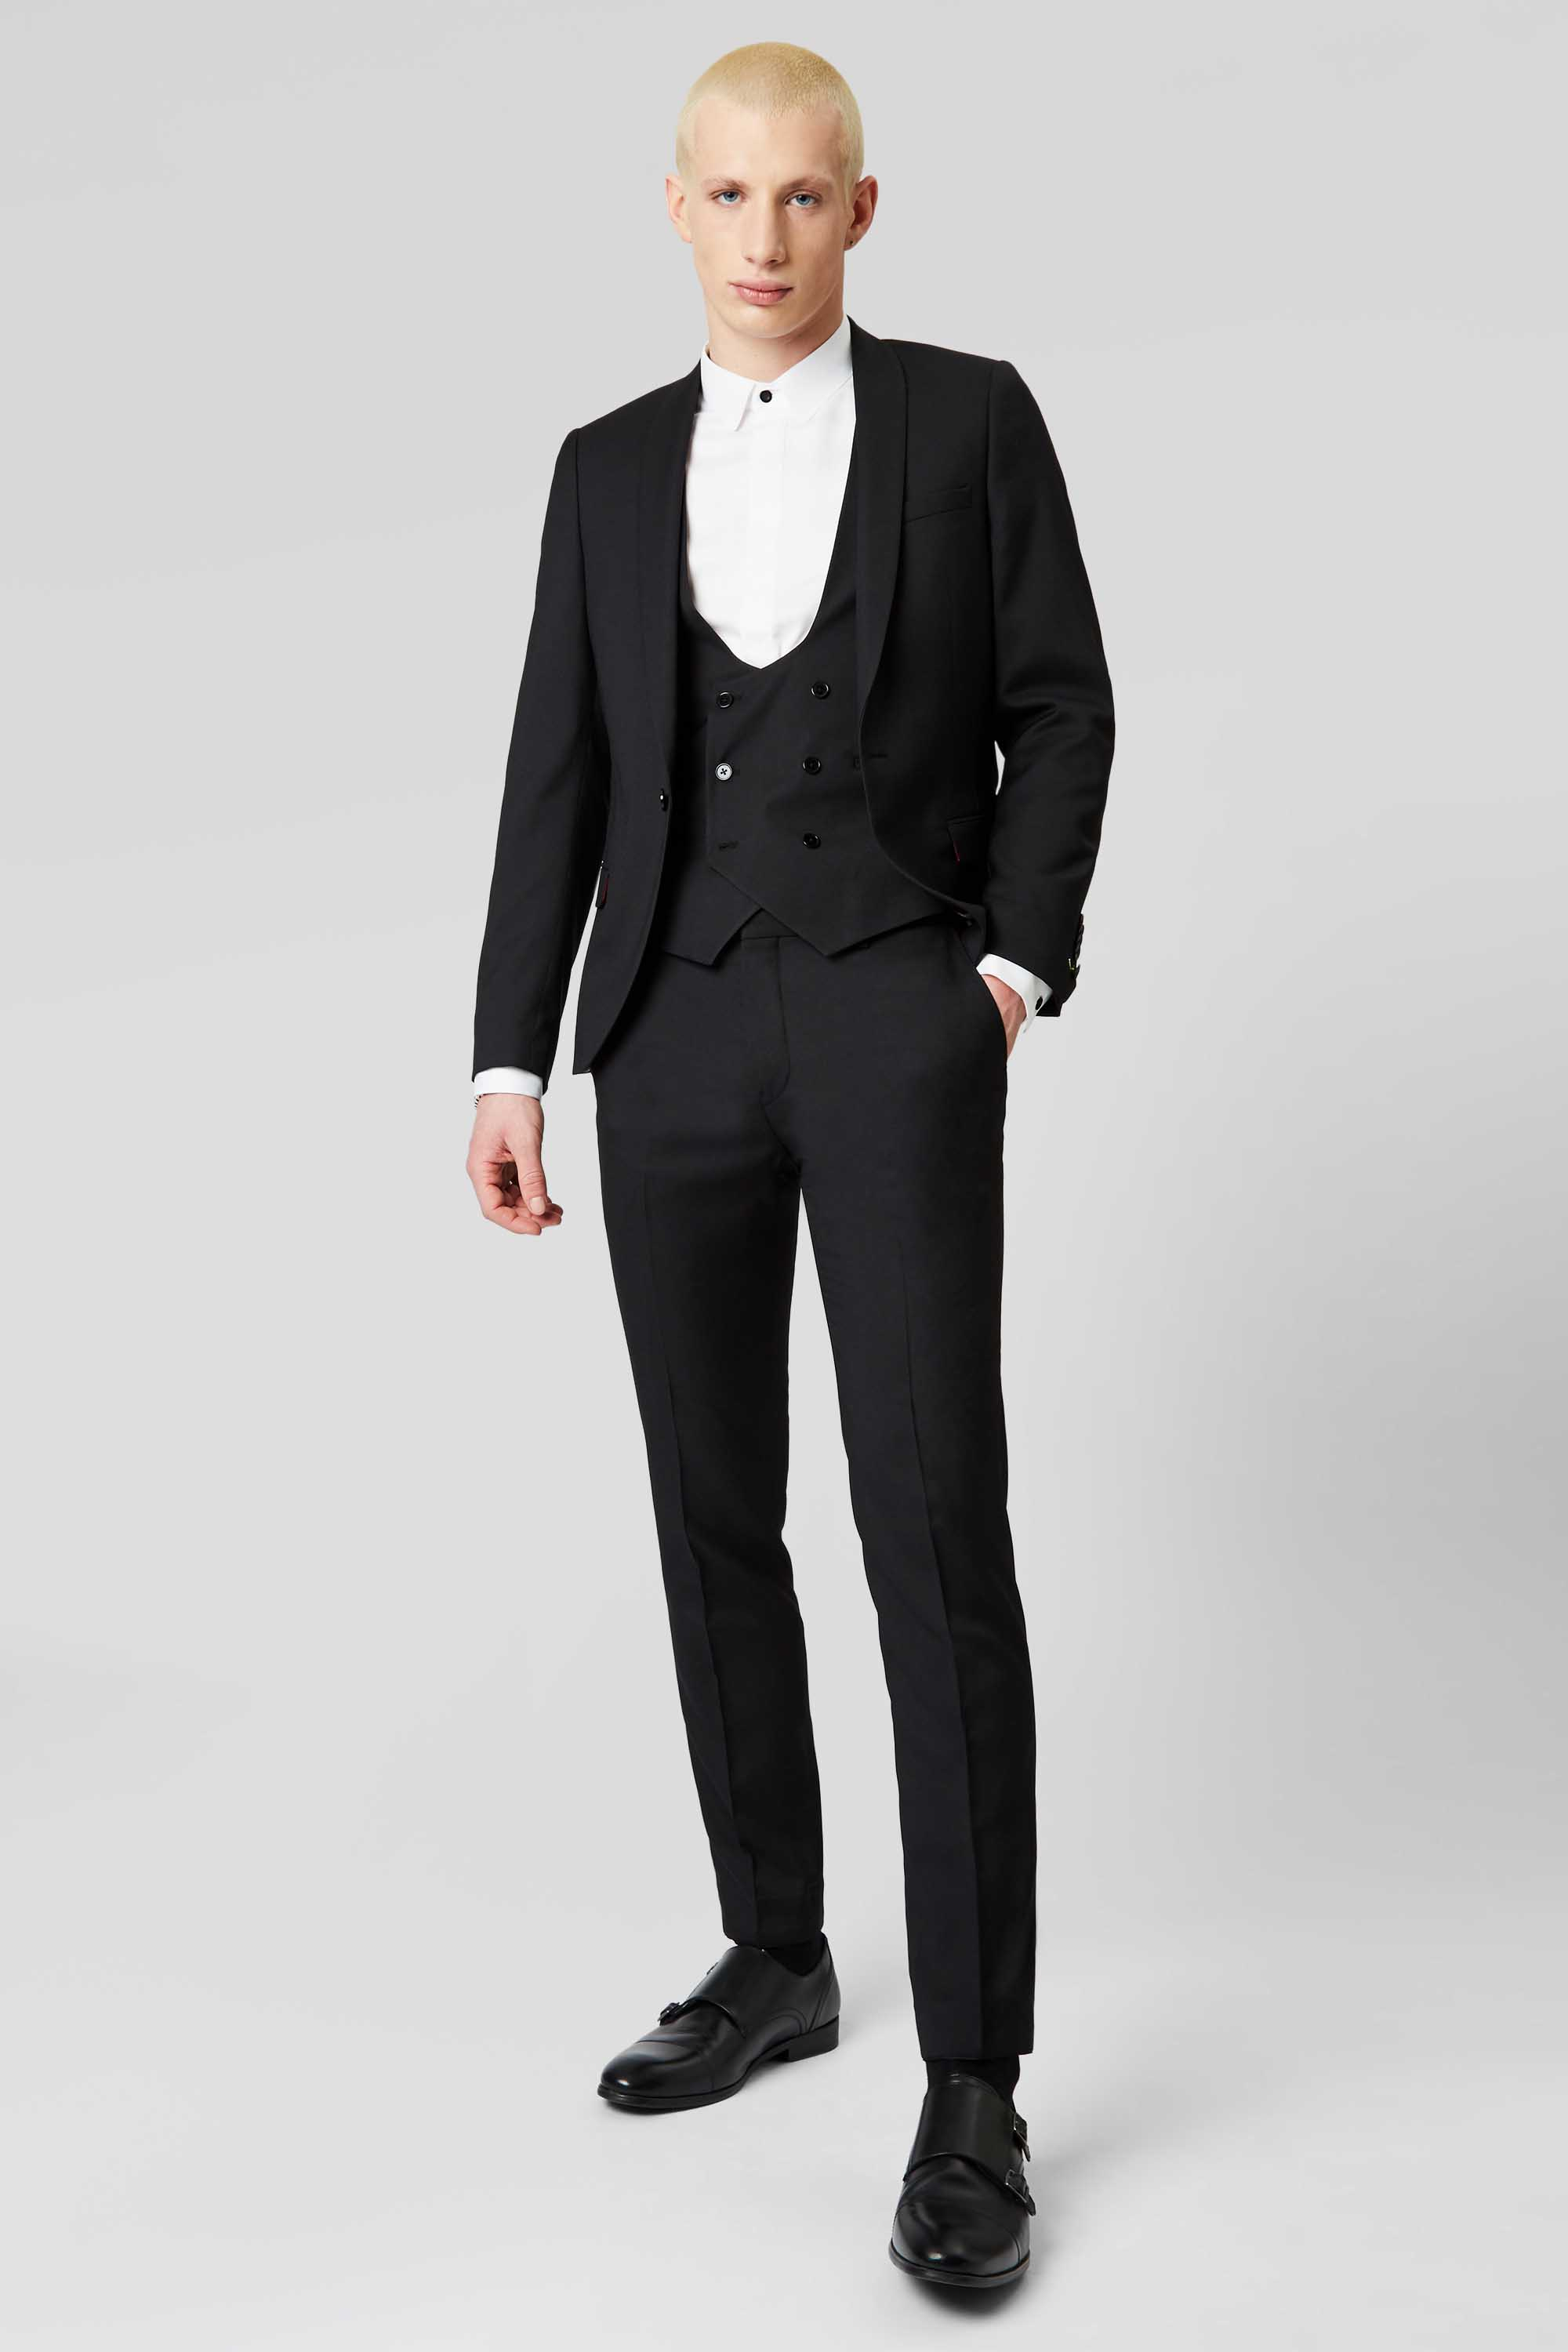 HEMMINGWAY SKINNY FIT SUIT JACKET IN BLACK - NEW ELLROY